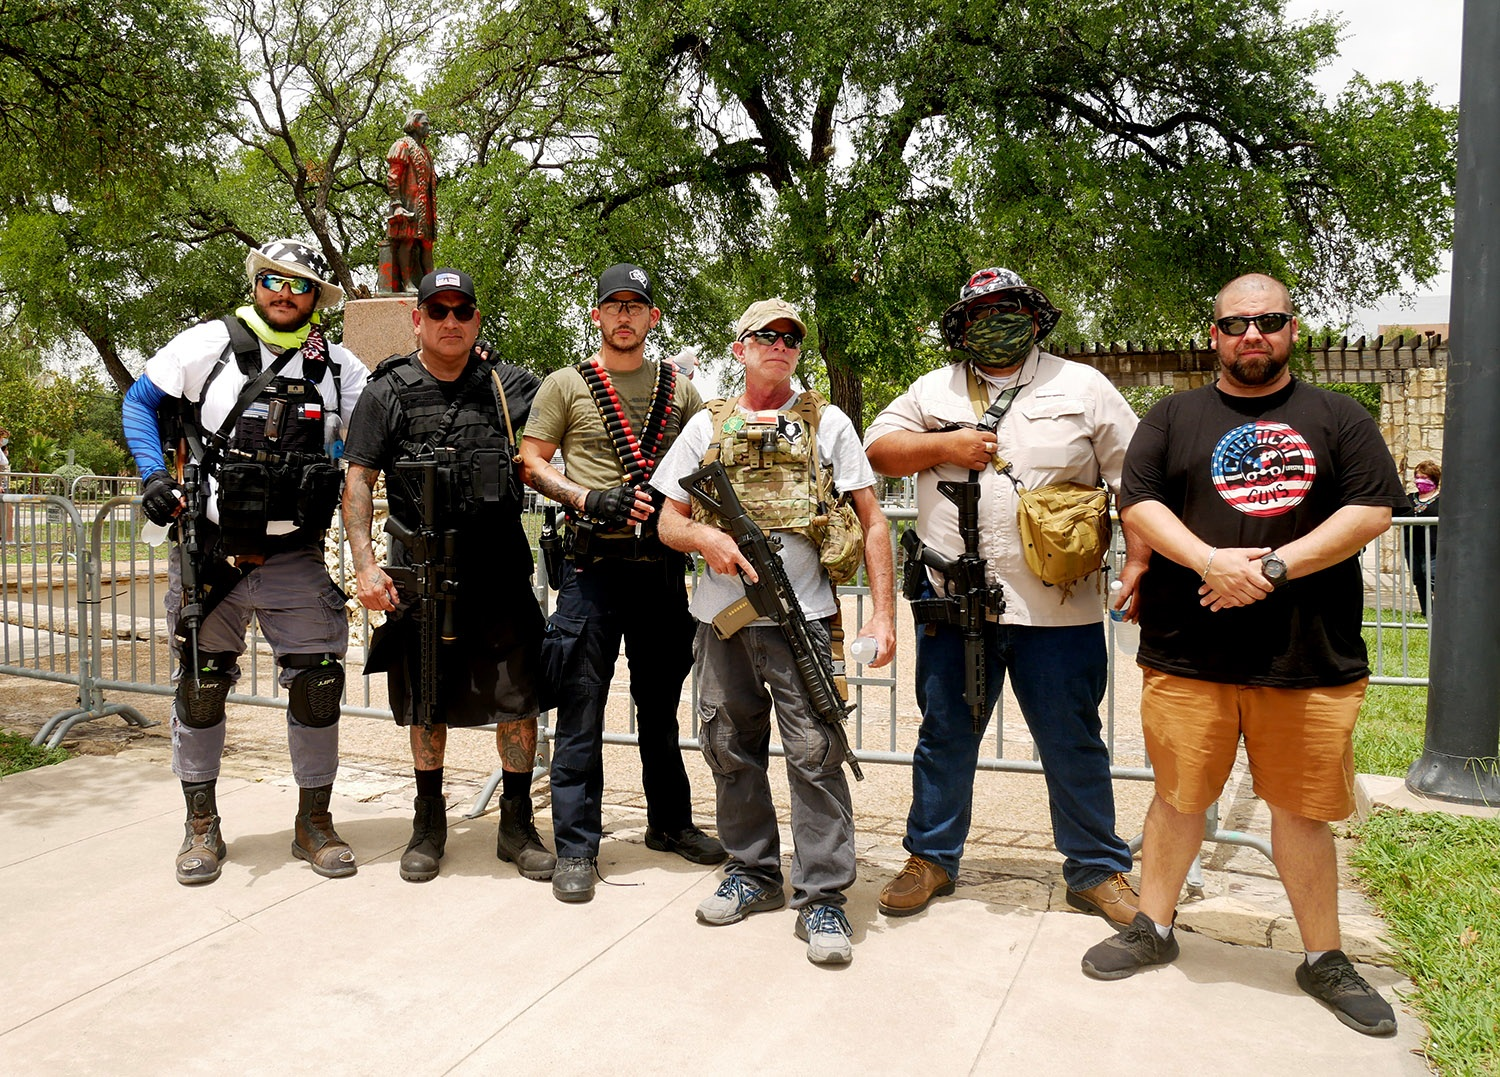 Victor Javier Zamora, 29 (from left); Roger Rodkey, 52; Steven Ruiz, 33,: John May, 51; Robert N., 42; and Marc F., 45, pose for a photo Saturday at Columbus Park.